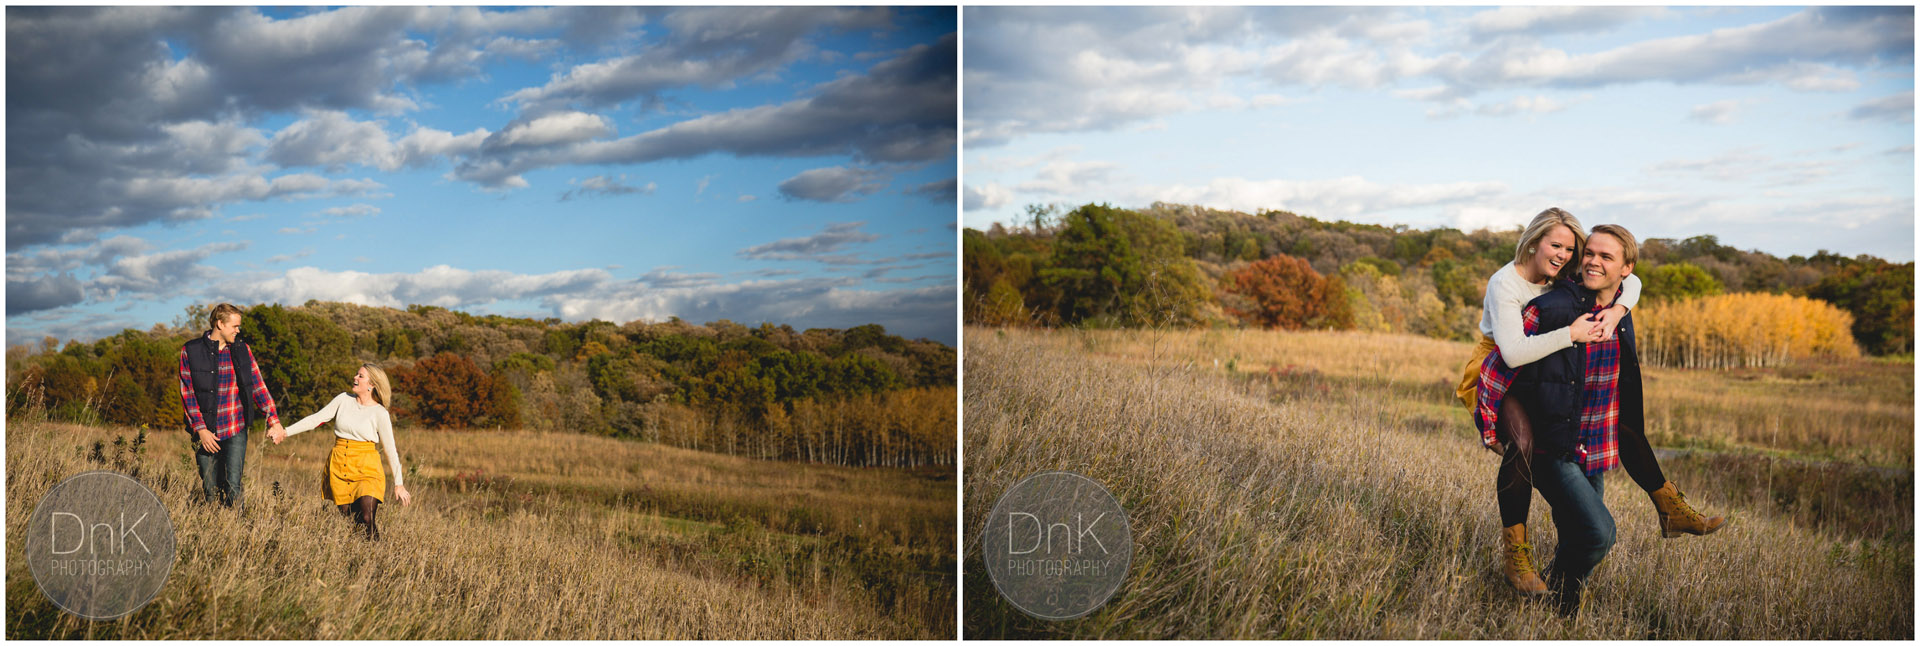 02-Fall-Engagement-Minnesota-DnK-Photography